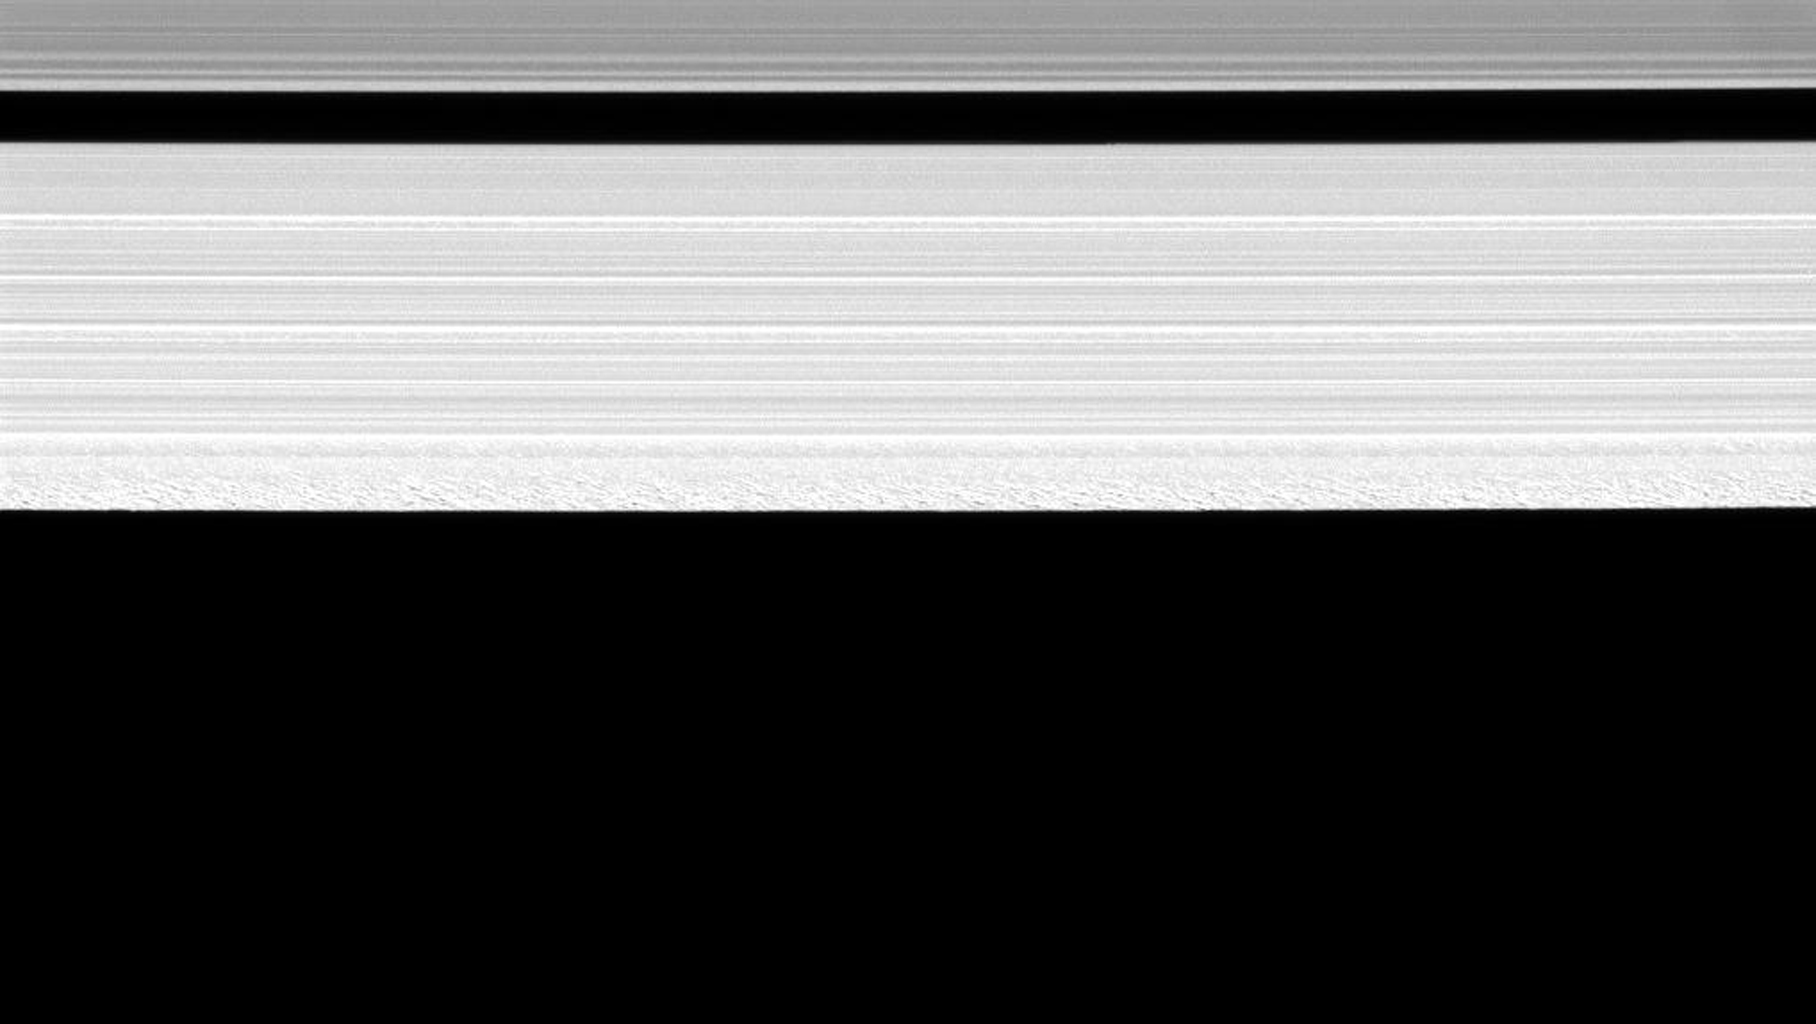 NASA's Cassini spacecraft reveals a remarkable amount of structure in the outer portion of Saturn's A ring in this image taken on June 2, 2008.